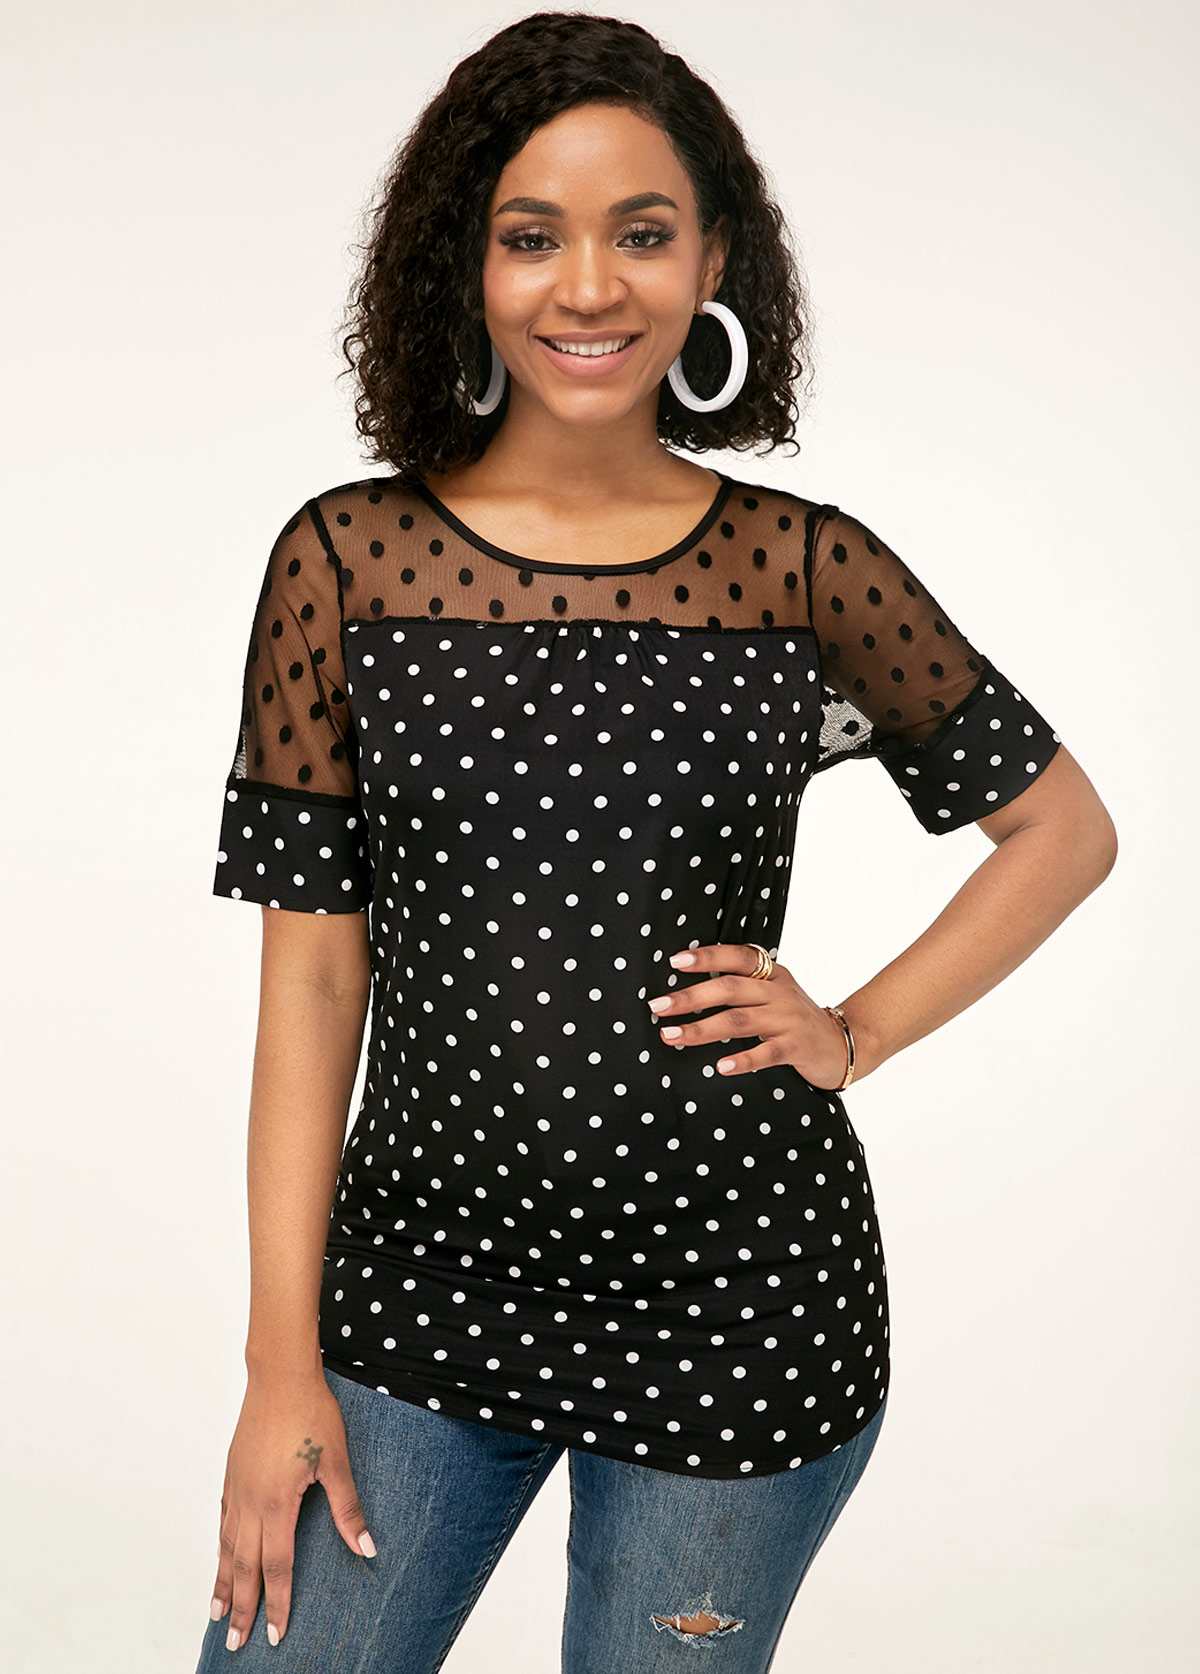 Short Sleeve Polka Dot Lace Patchwork Blouse